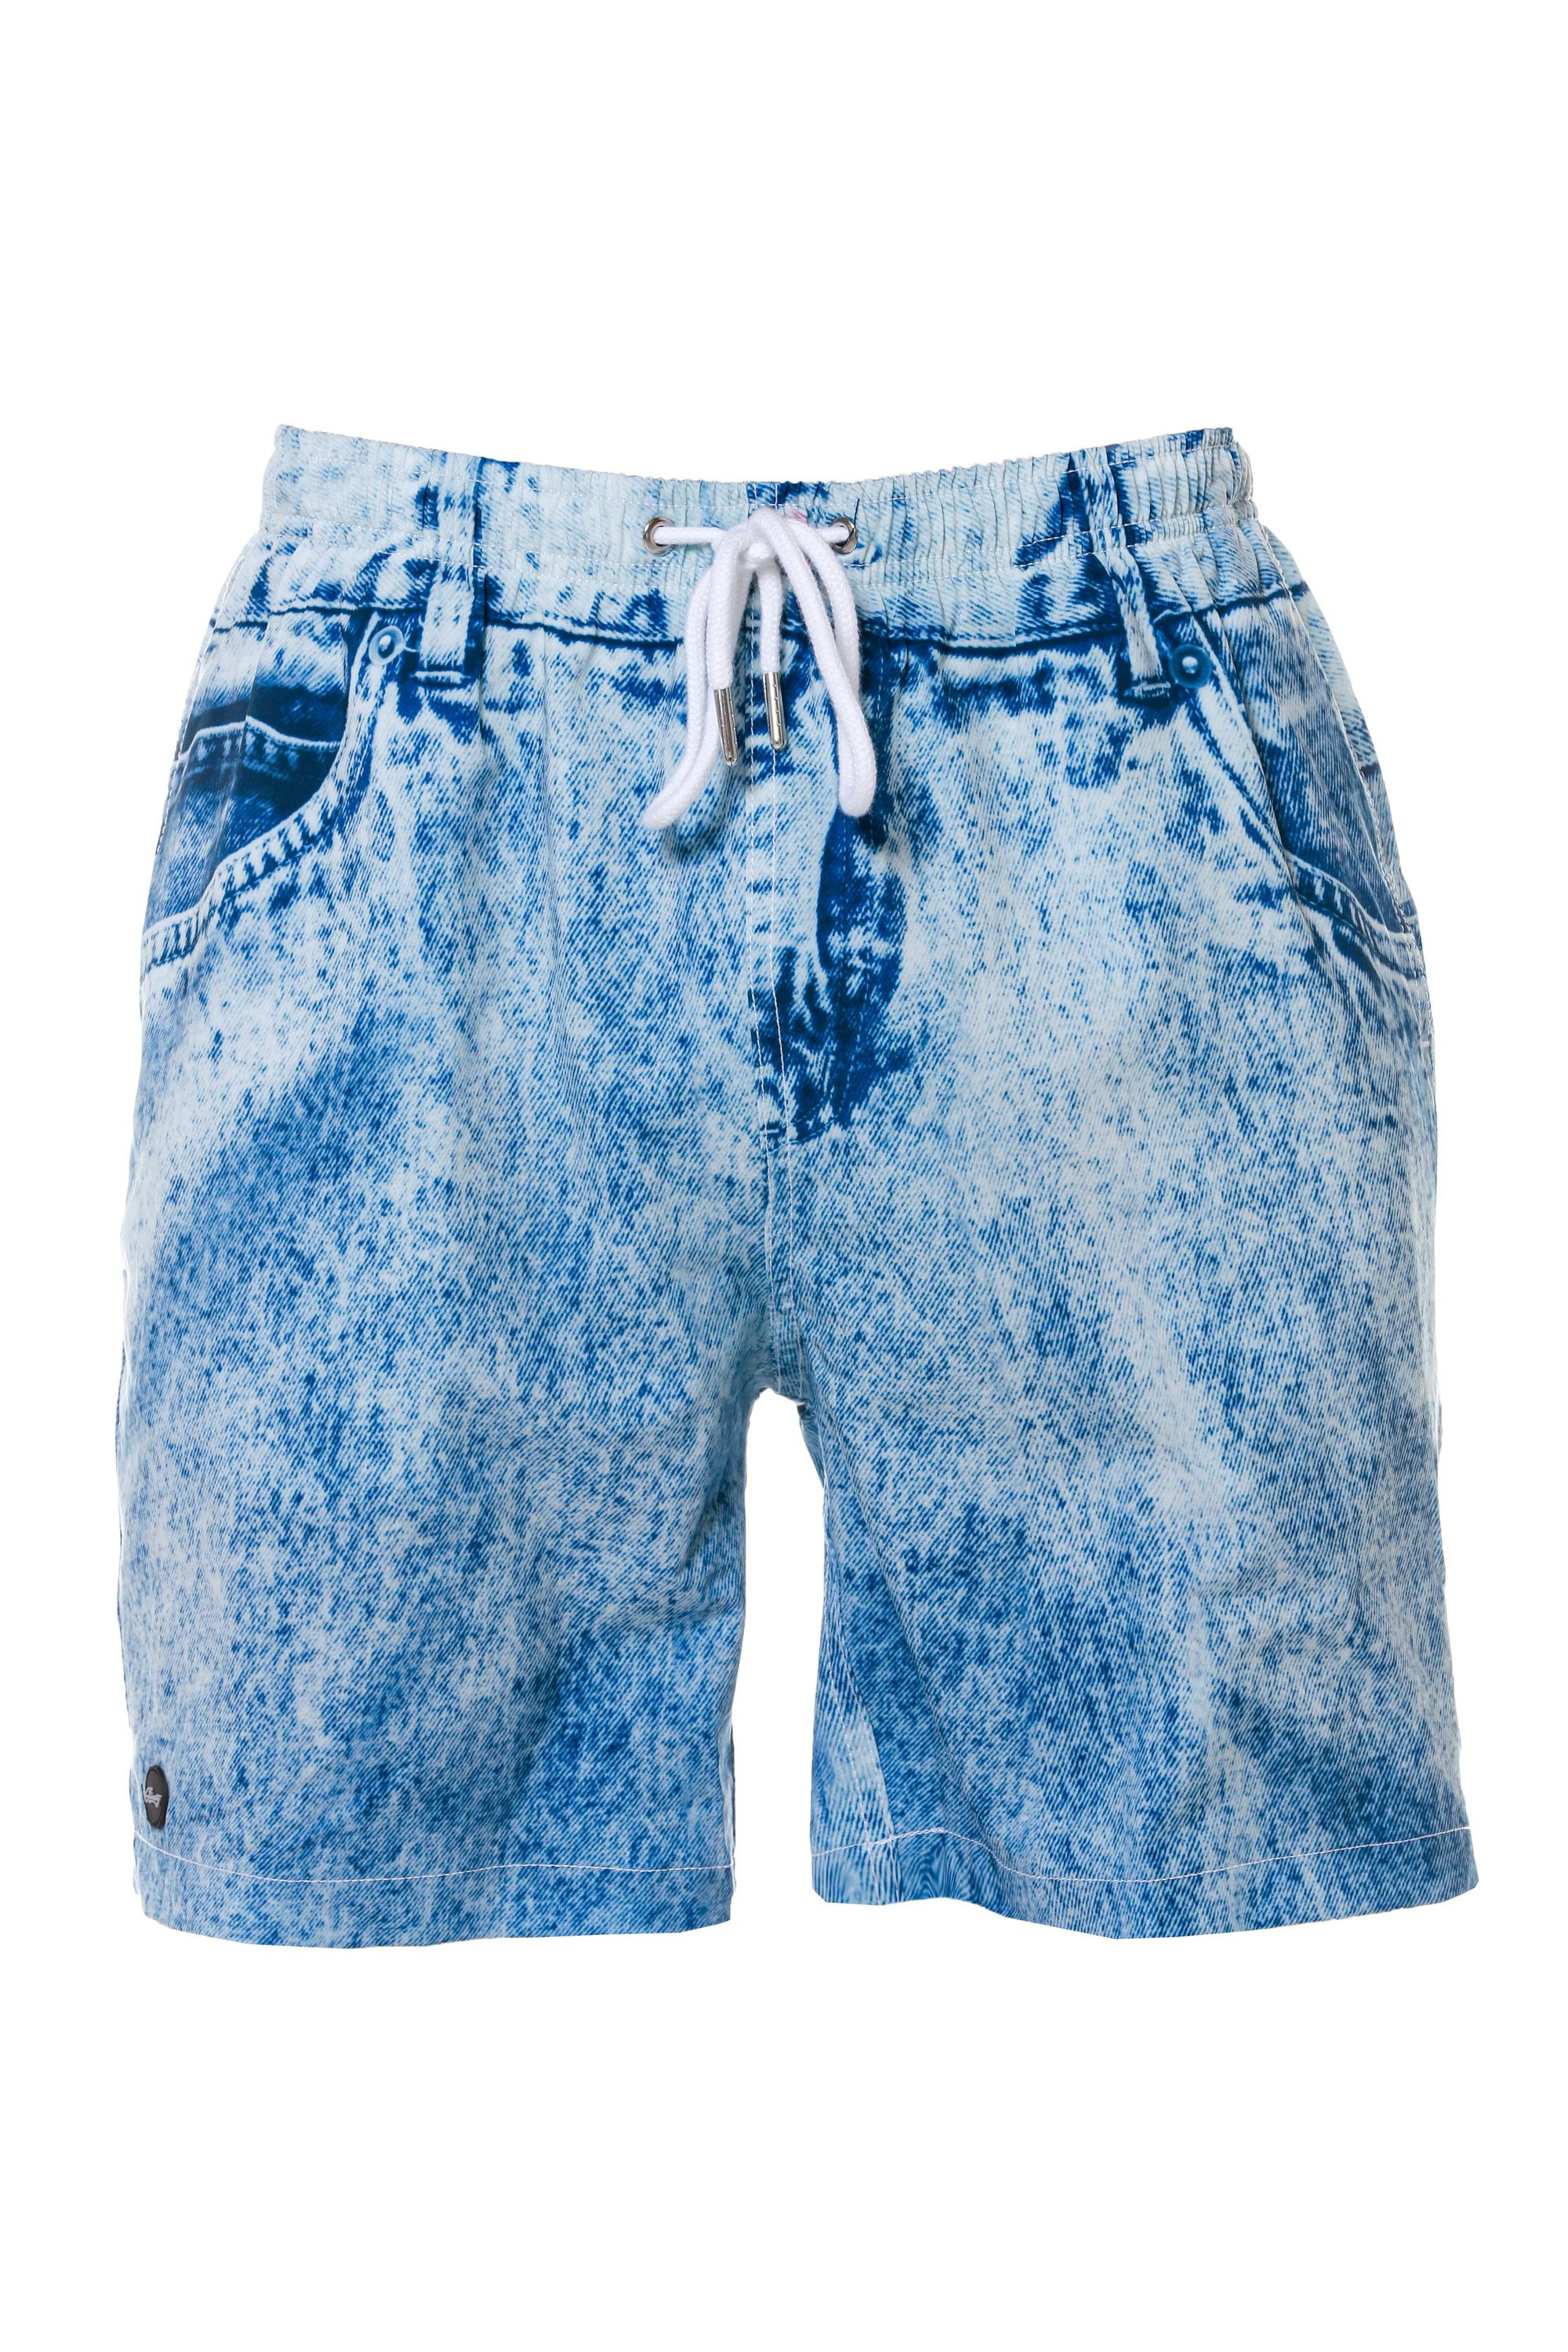 1b58384db8 We all know jorts are the above-ground pool of the short world. Introducing  the Jorts swim shorts made only for above ground pools, pontoon boats, ...